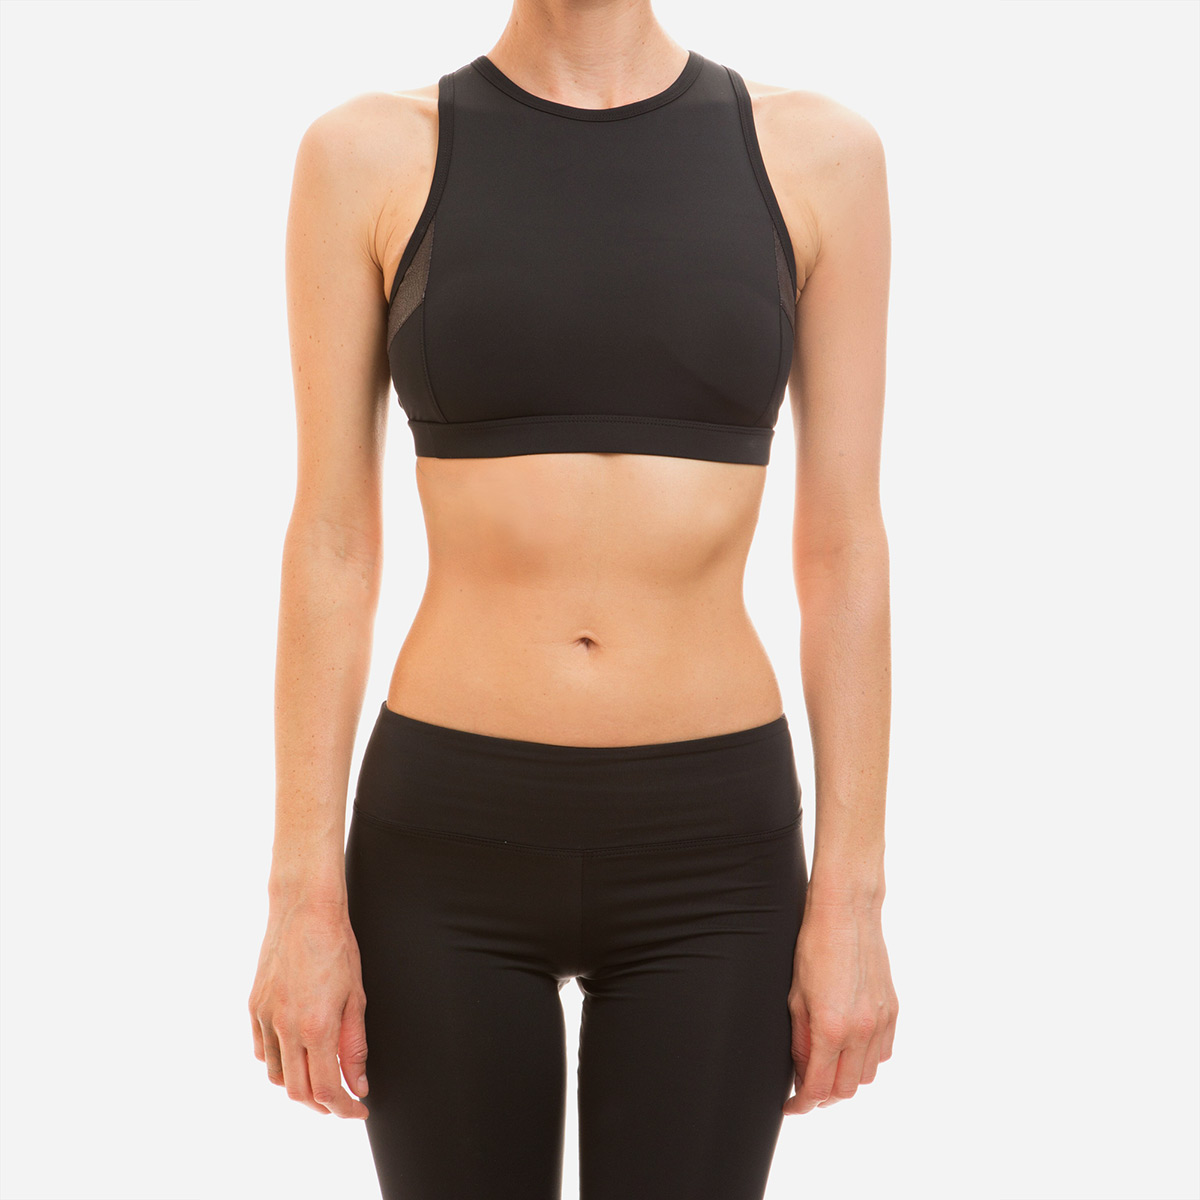 Solow Paneled Sports Bra Womens Apparel At Vickerey